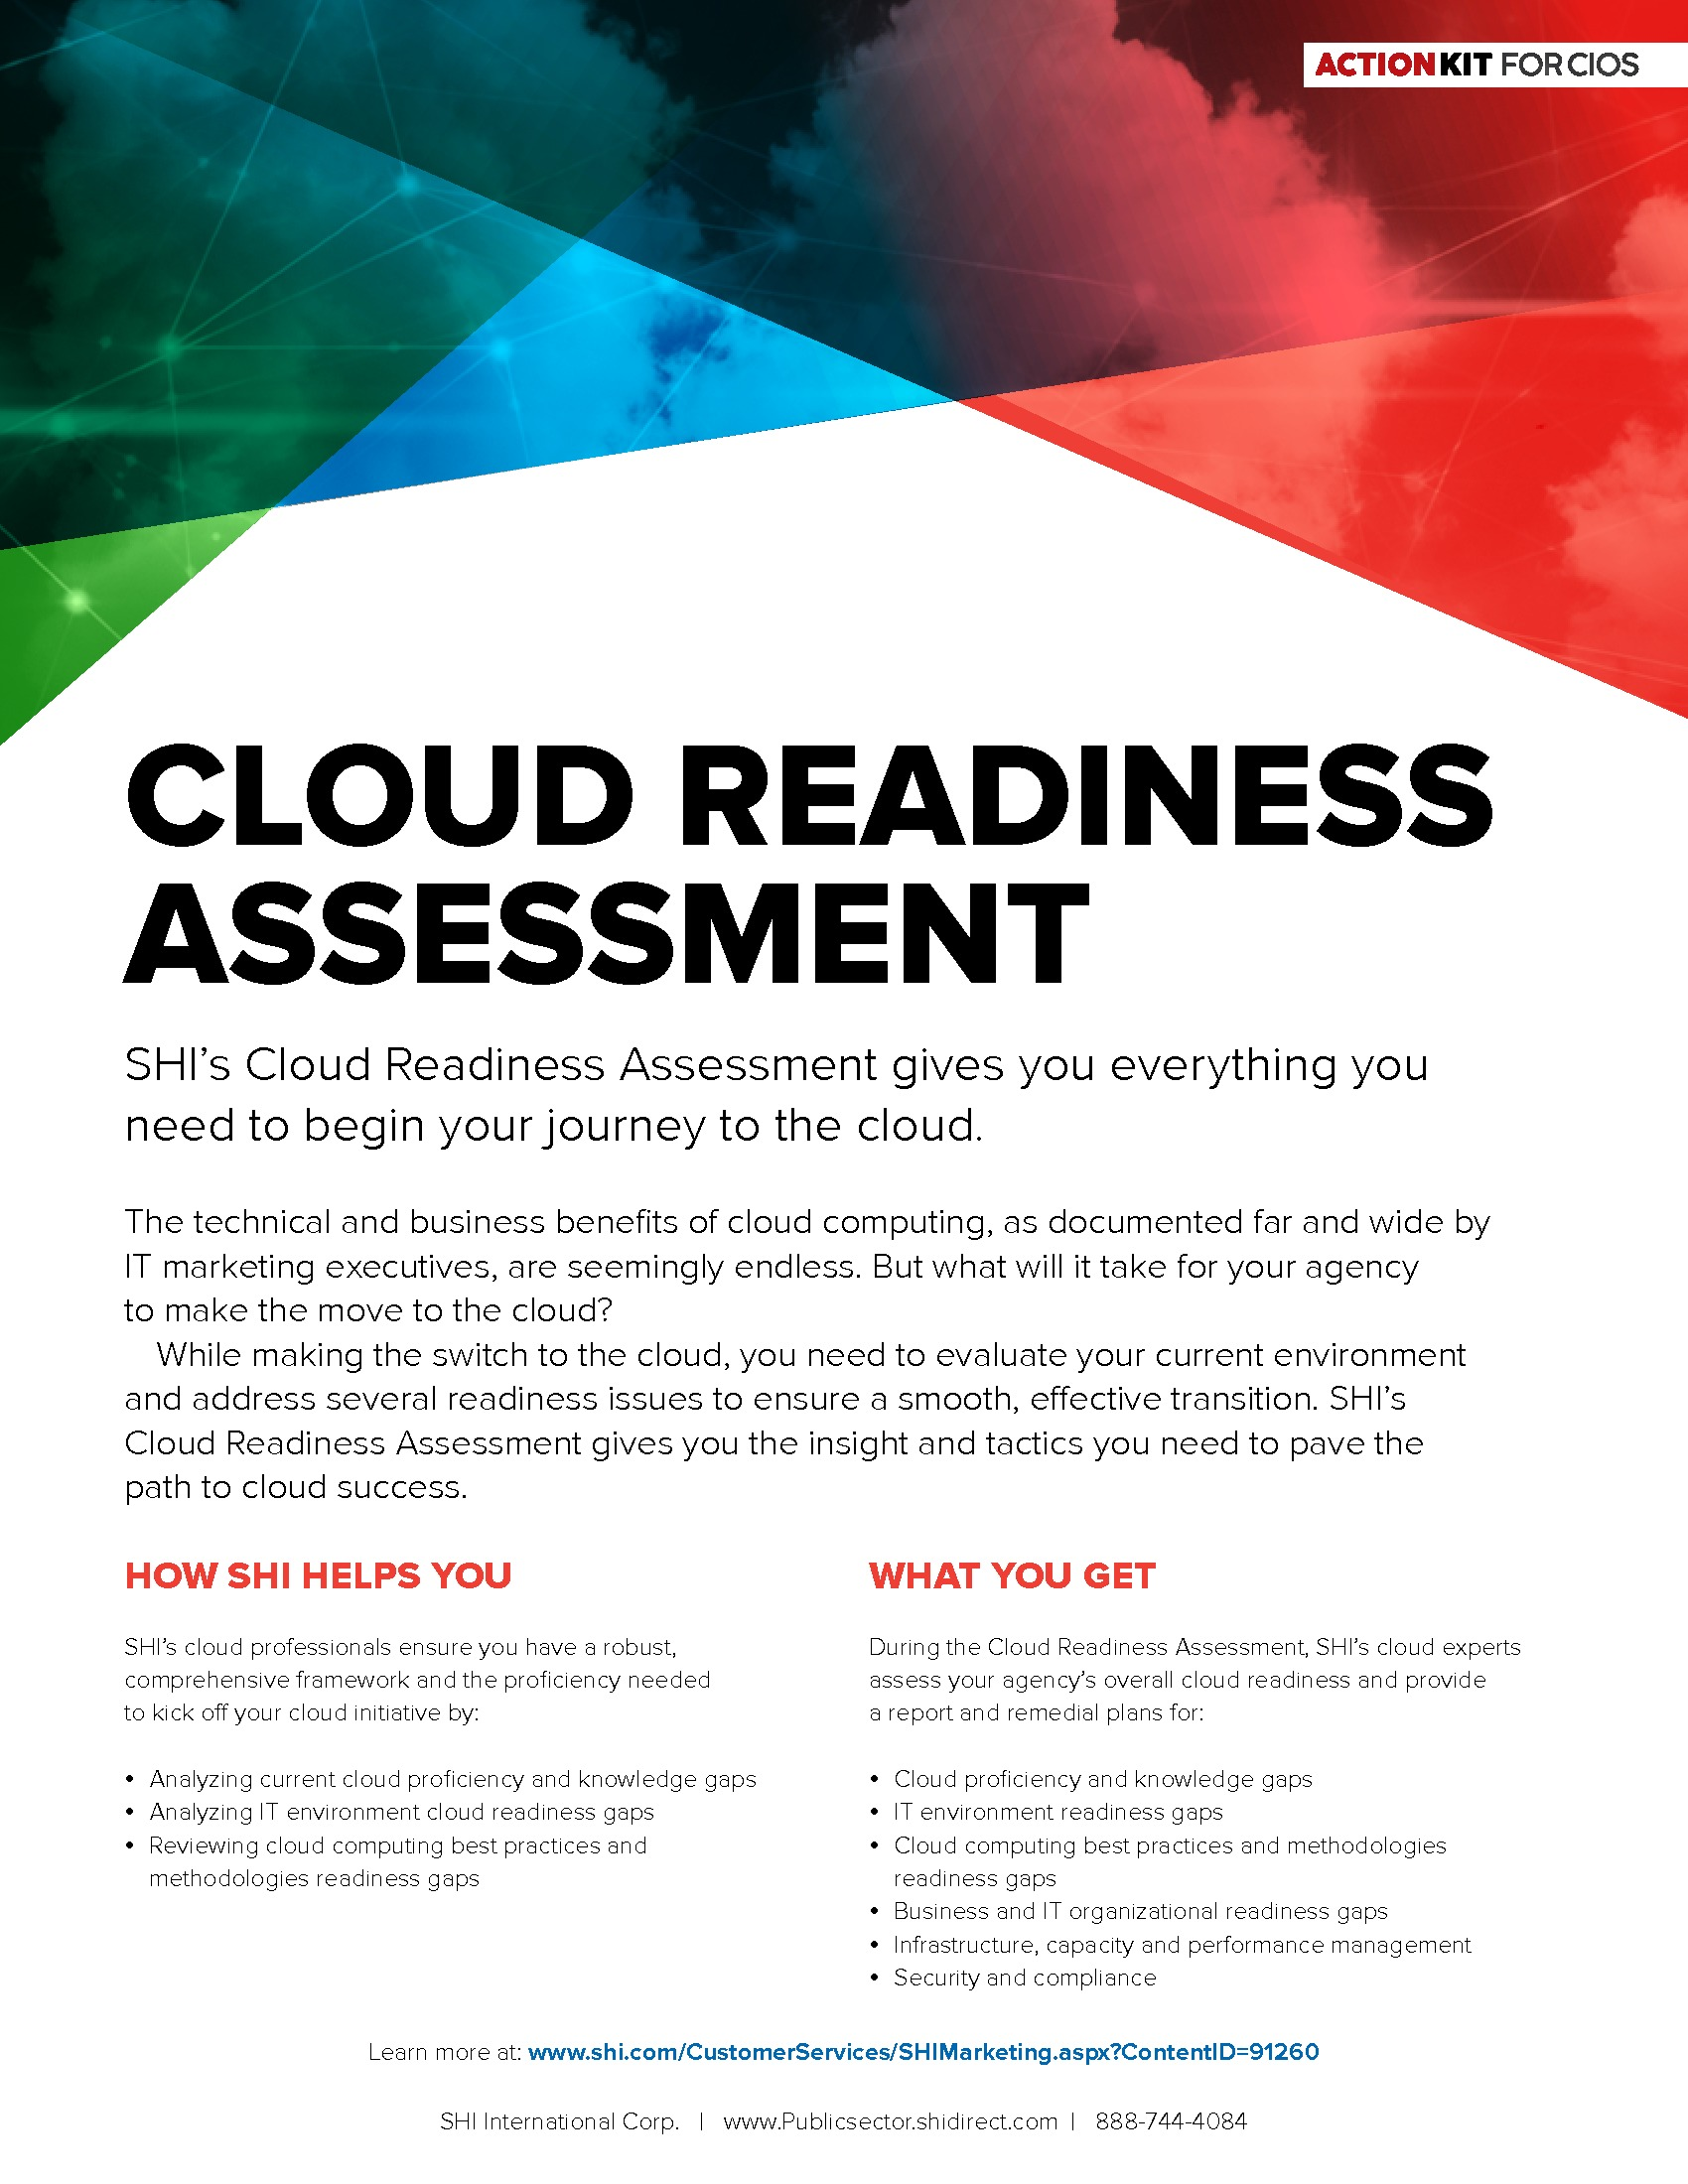 GT - SHI - Emerging Tech Channel - 181115 - Cloud Readiness Assessment